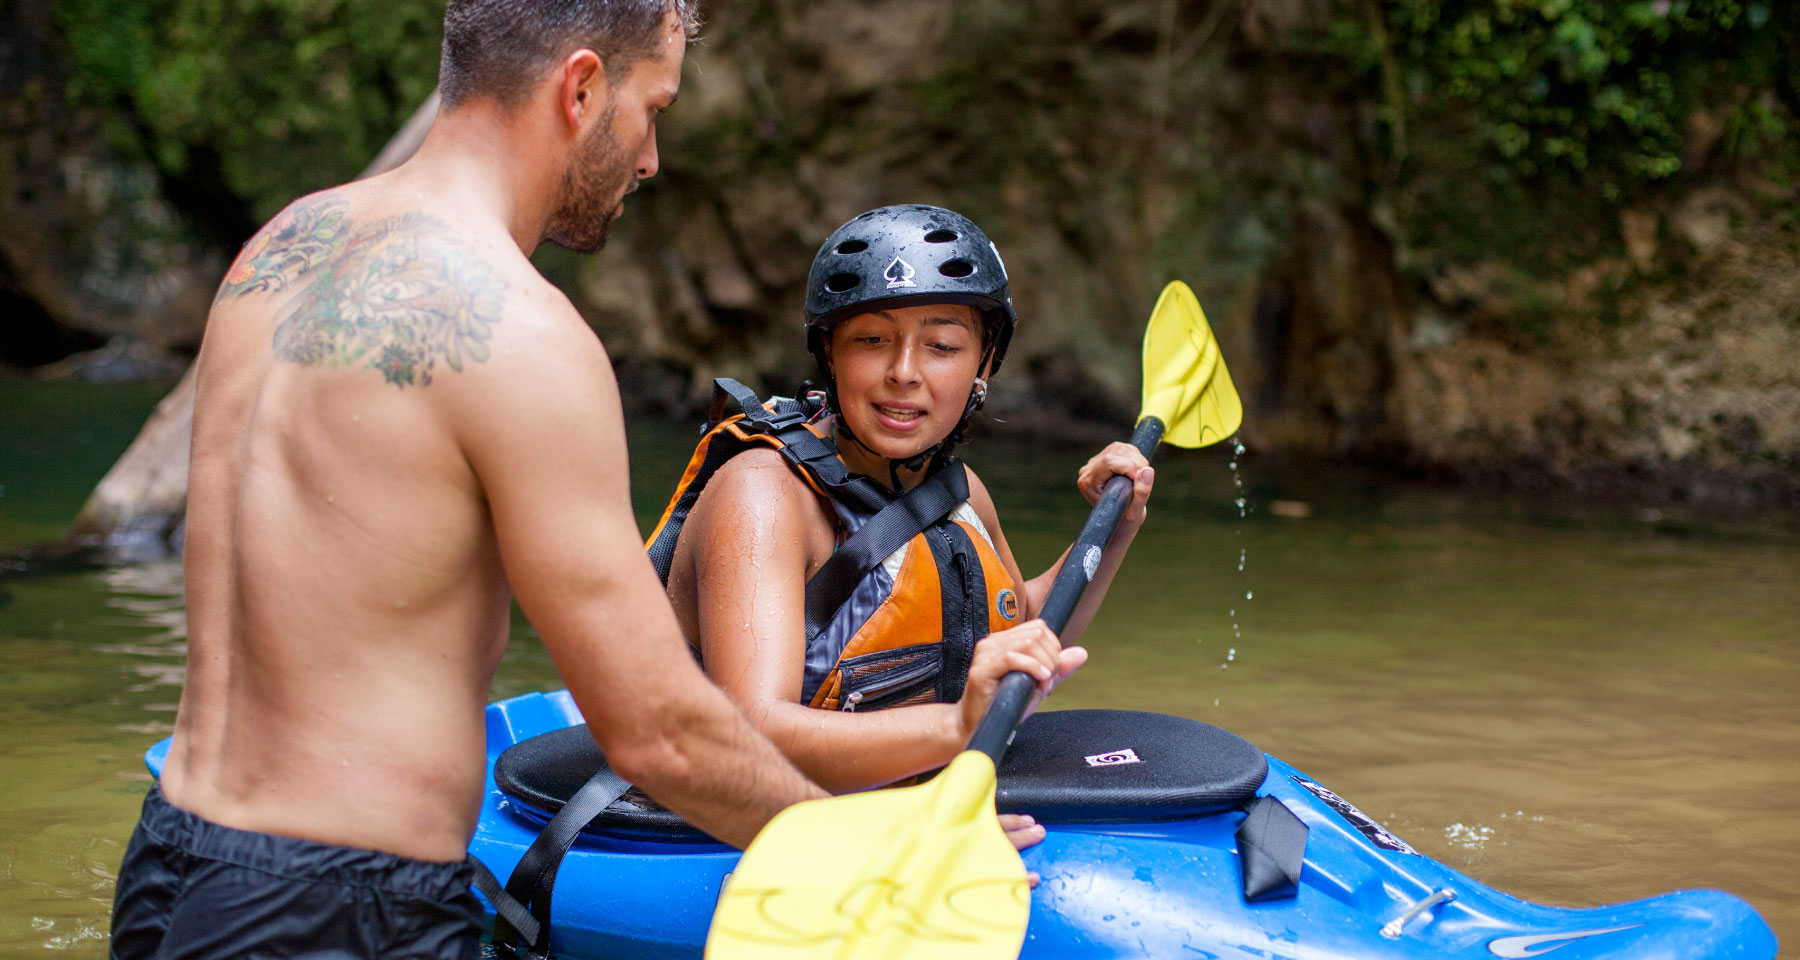 Student of Kayak School with Santiago Canala, instructor